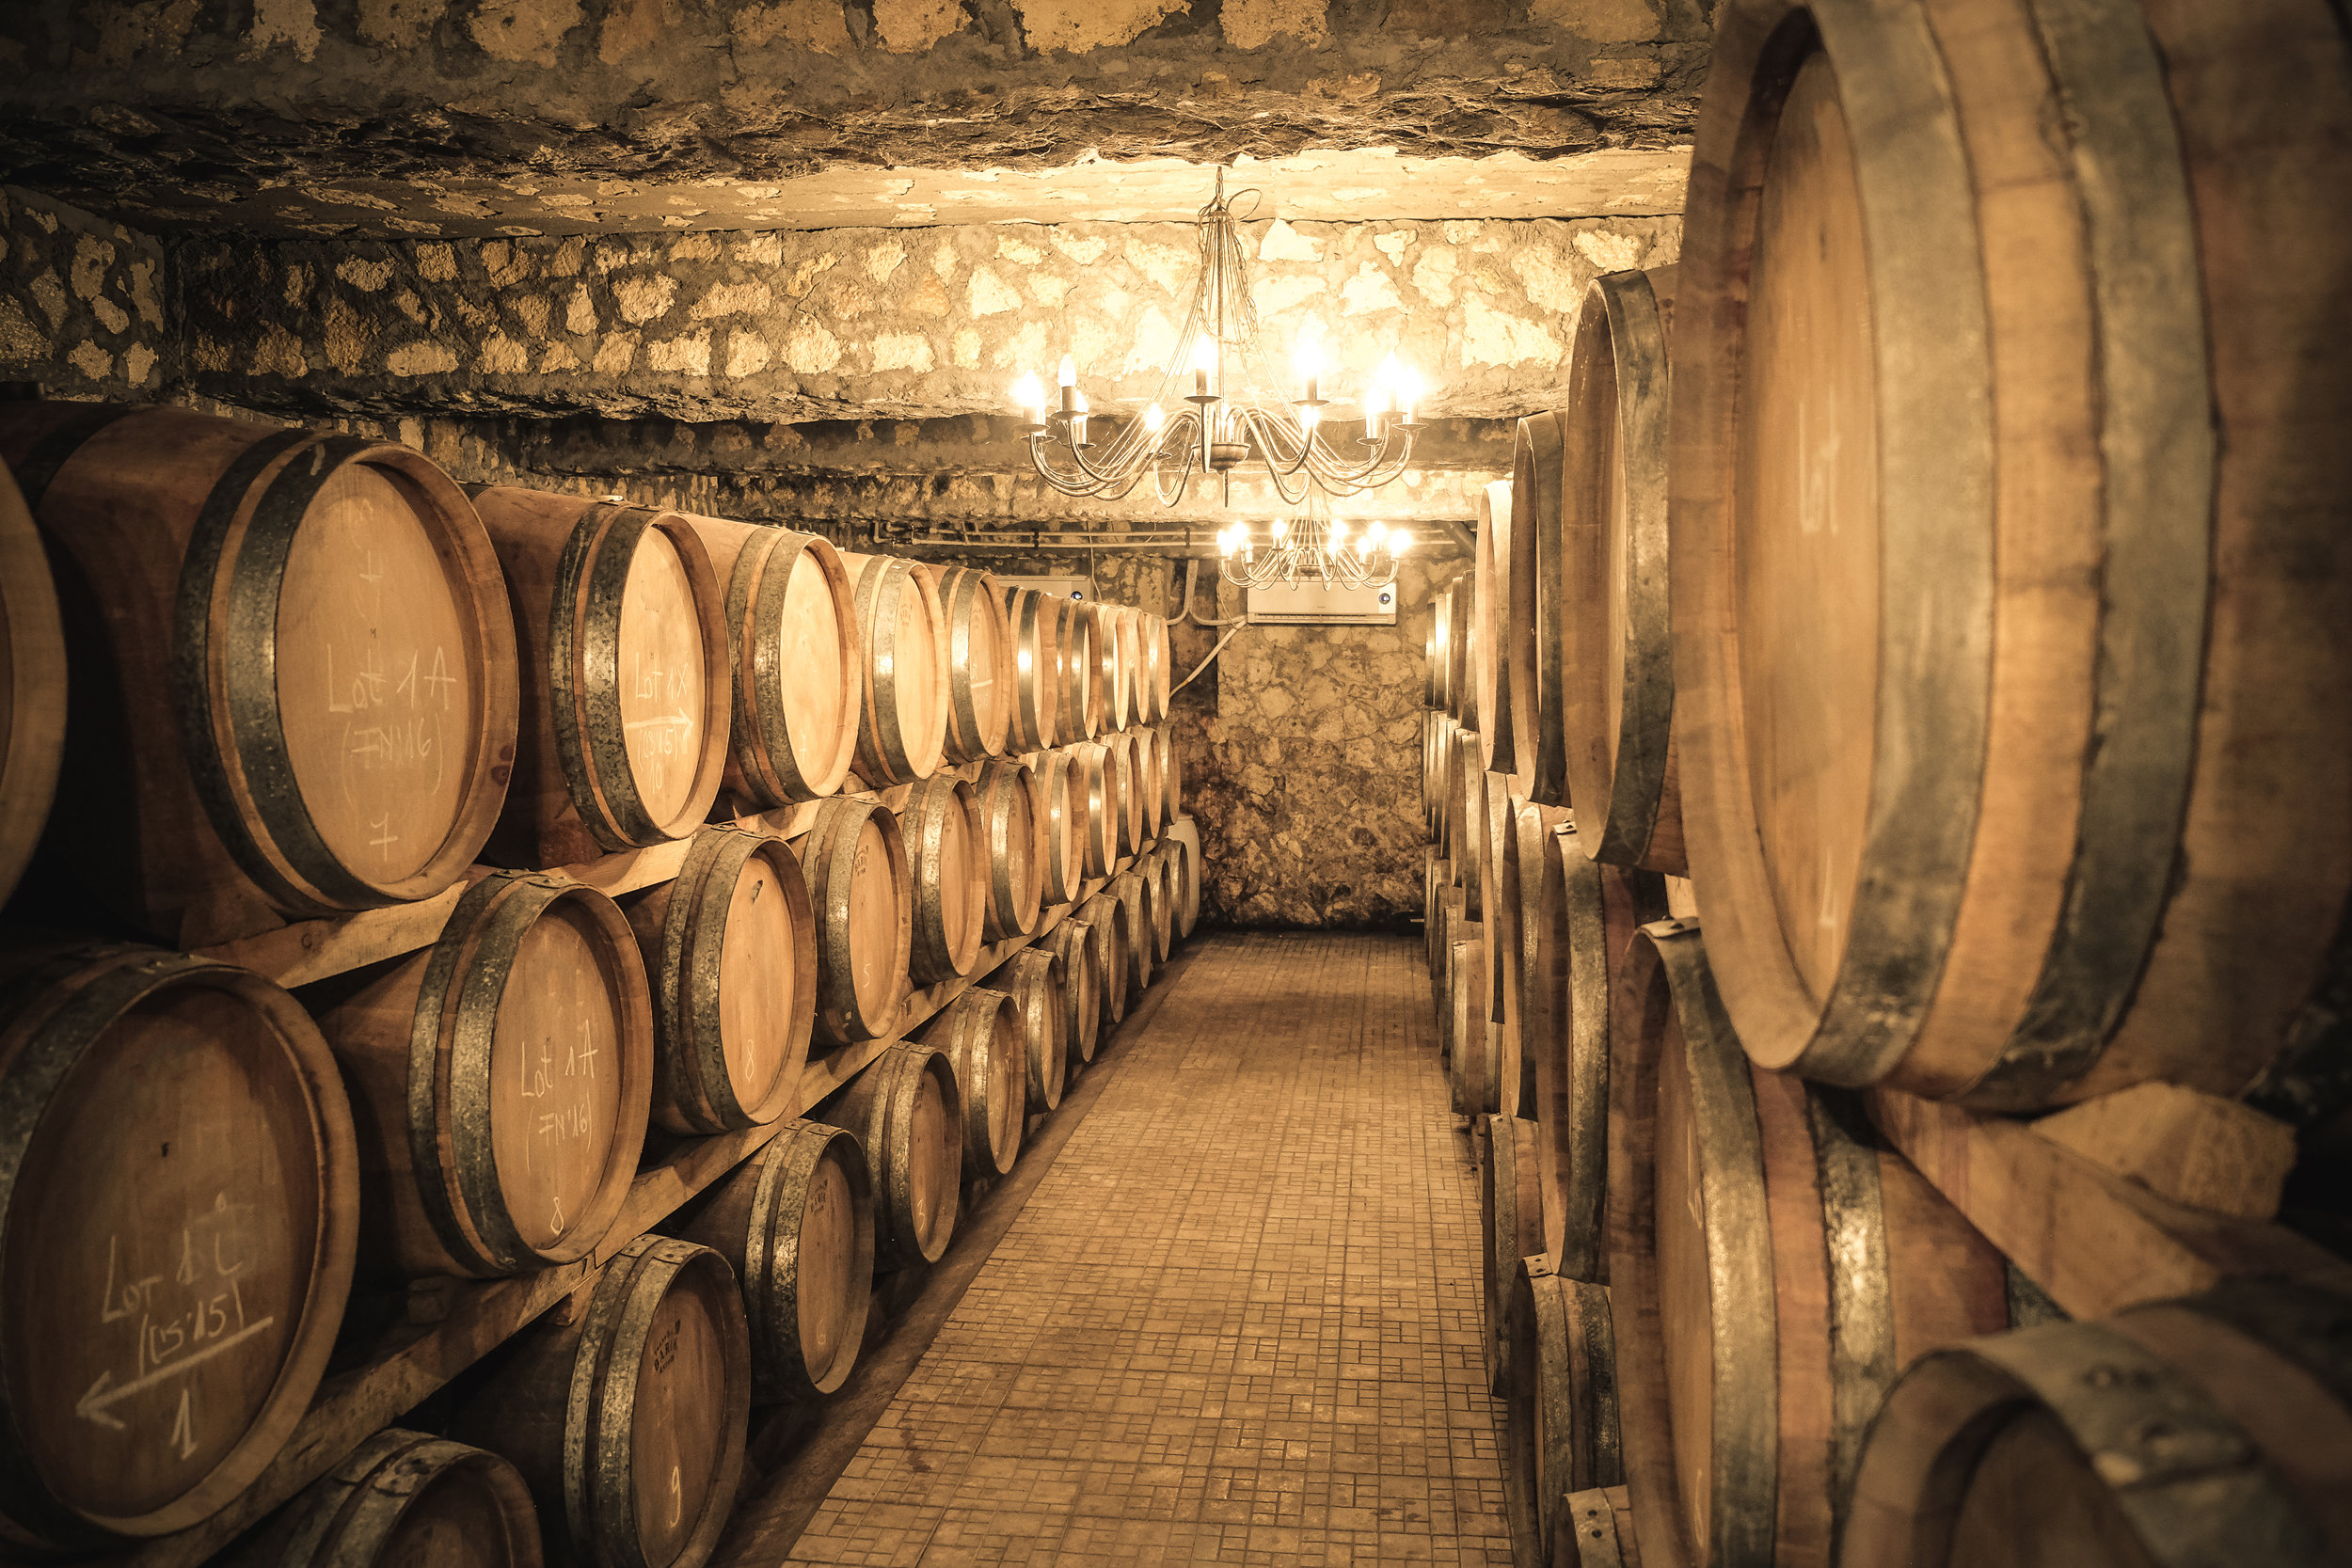 Winery cellar with wine barrels.jpg